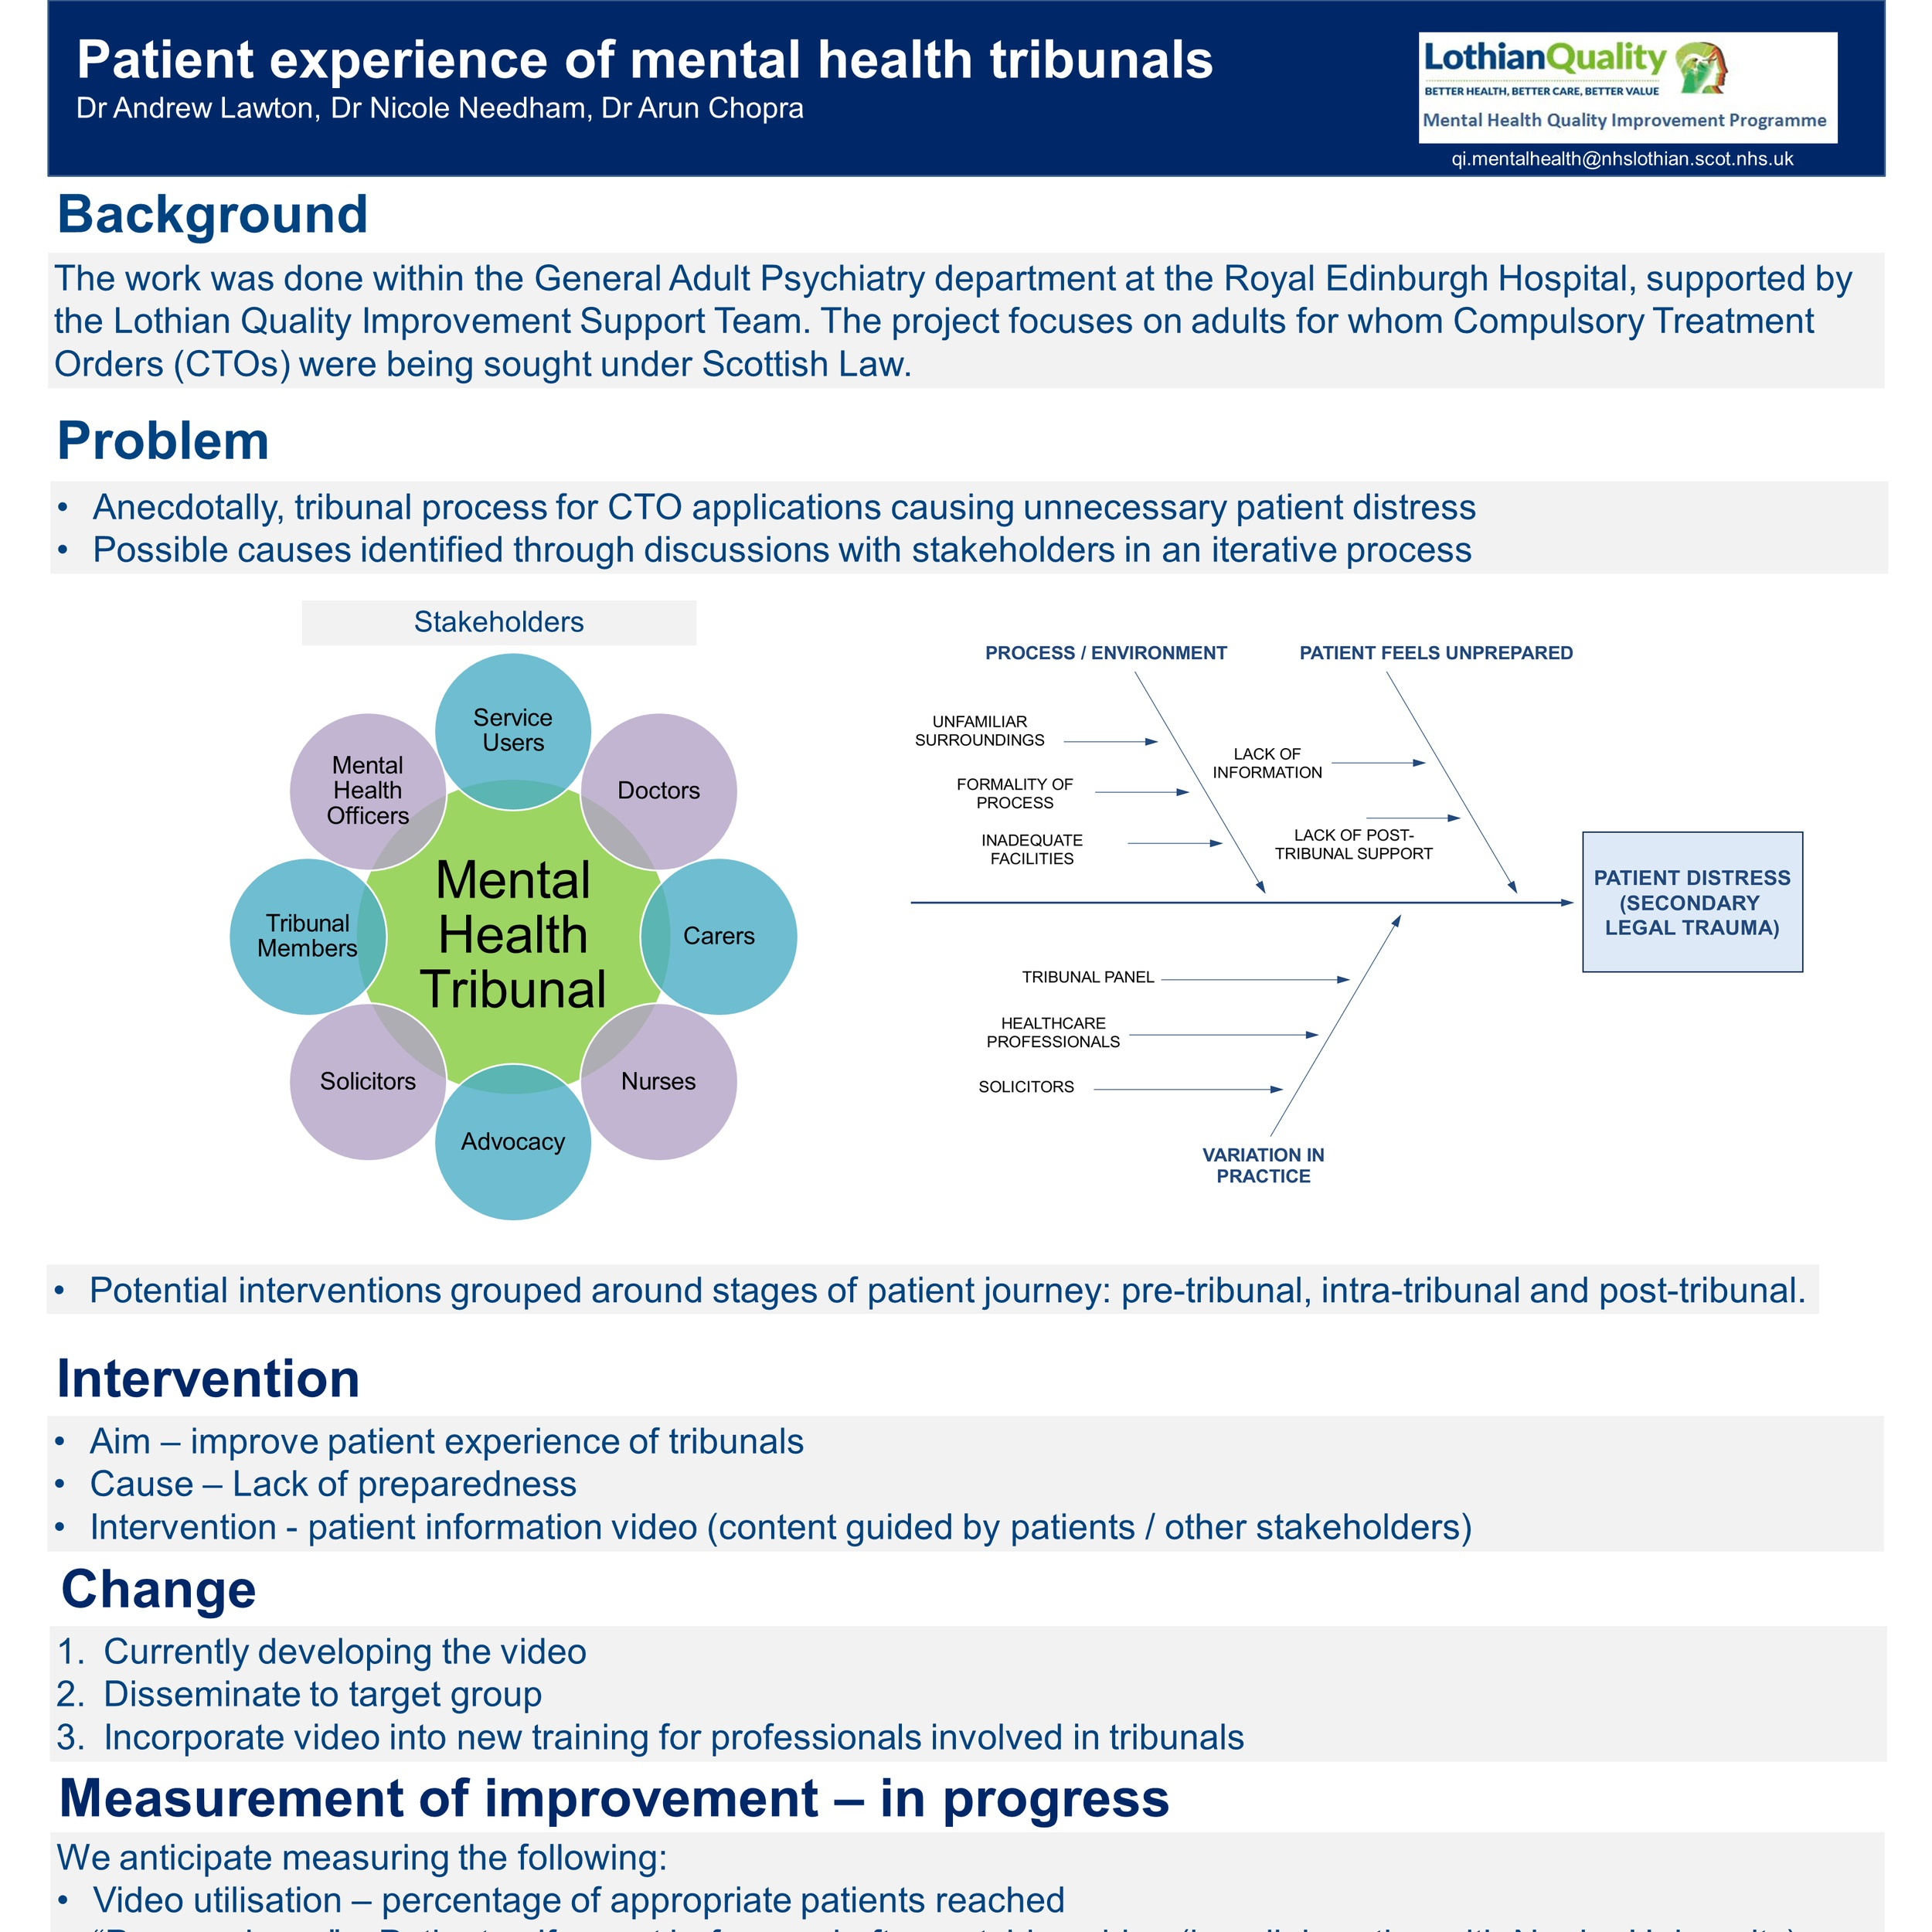 Patient experience of mental health tribunals